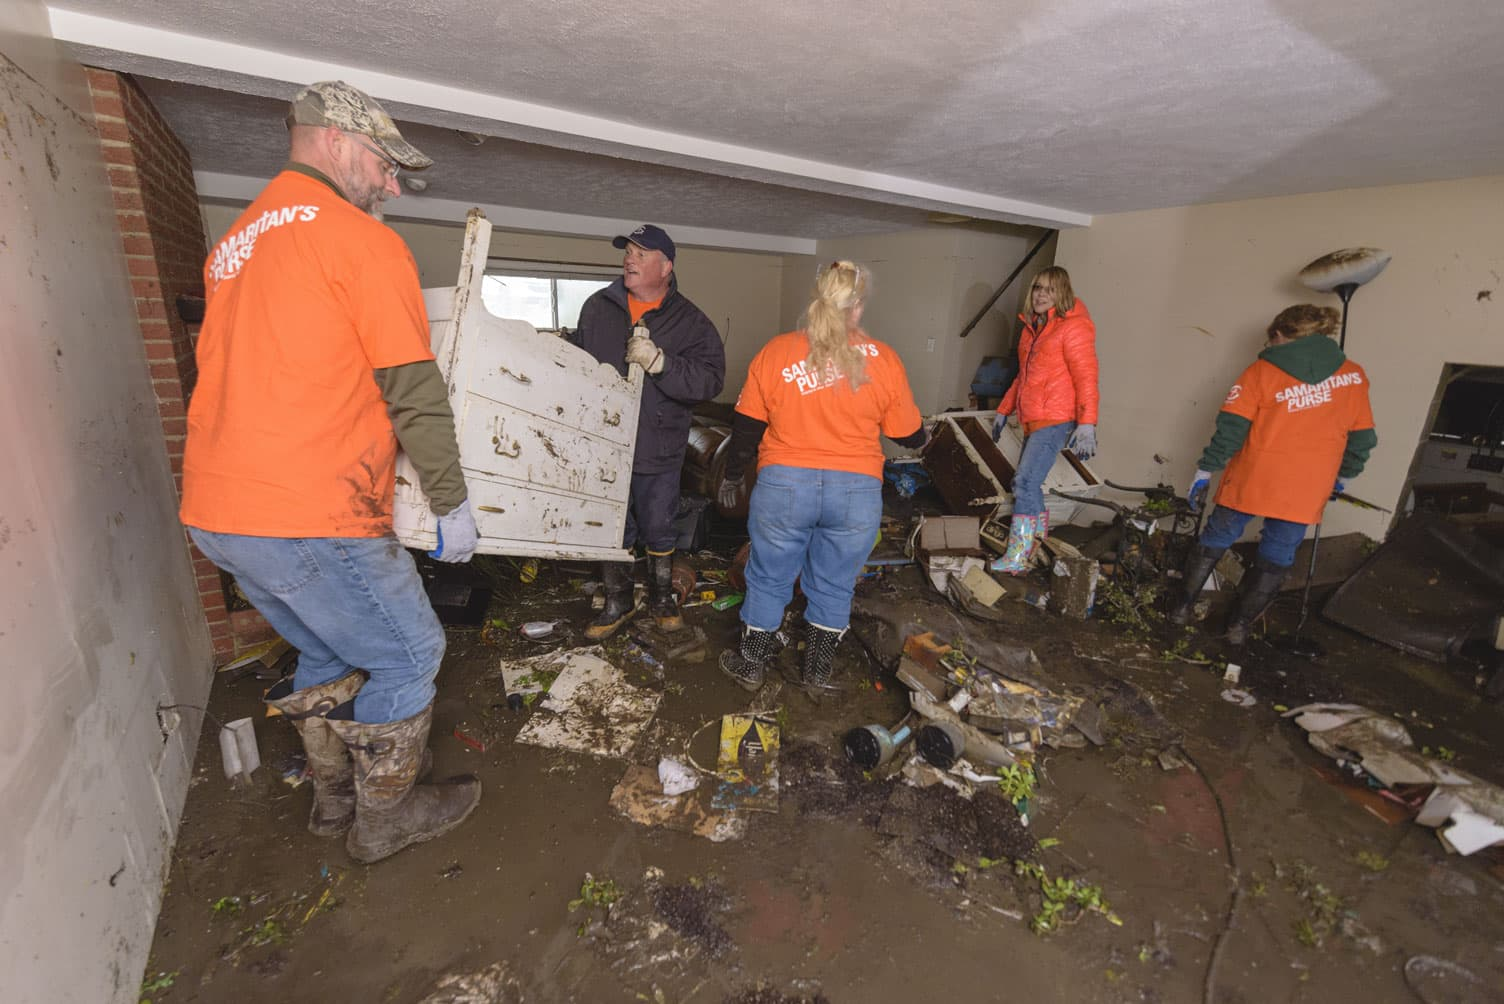 We deployed to multiple states this spring after severe weather systems ripped through the country and left homeowners desperate for help.